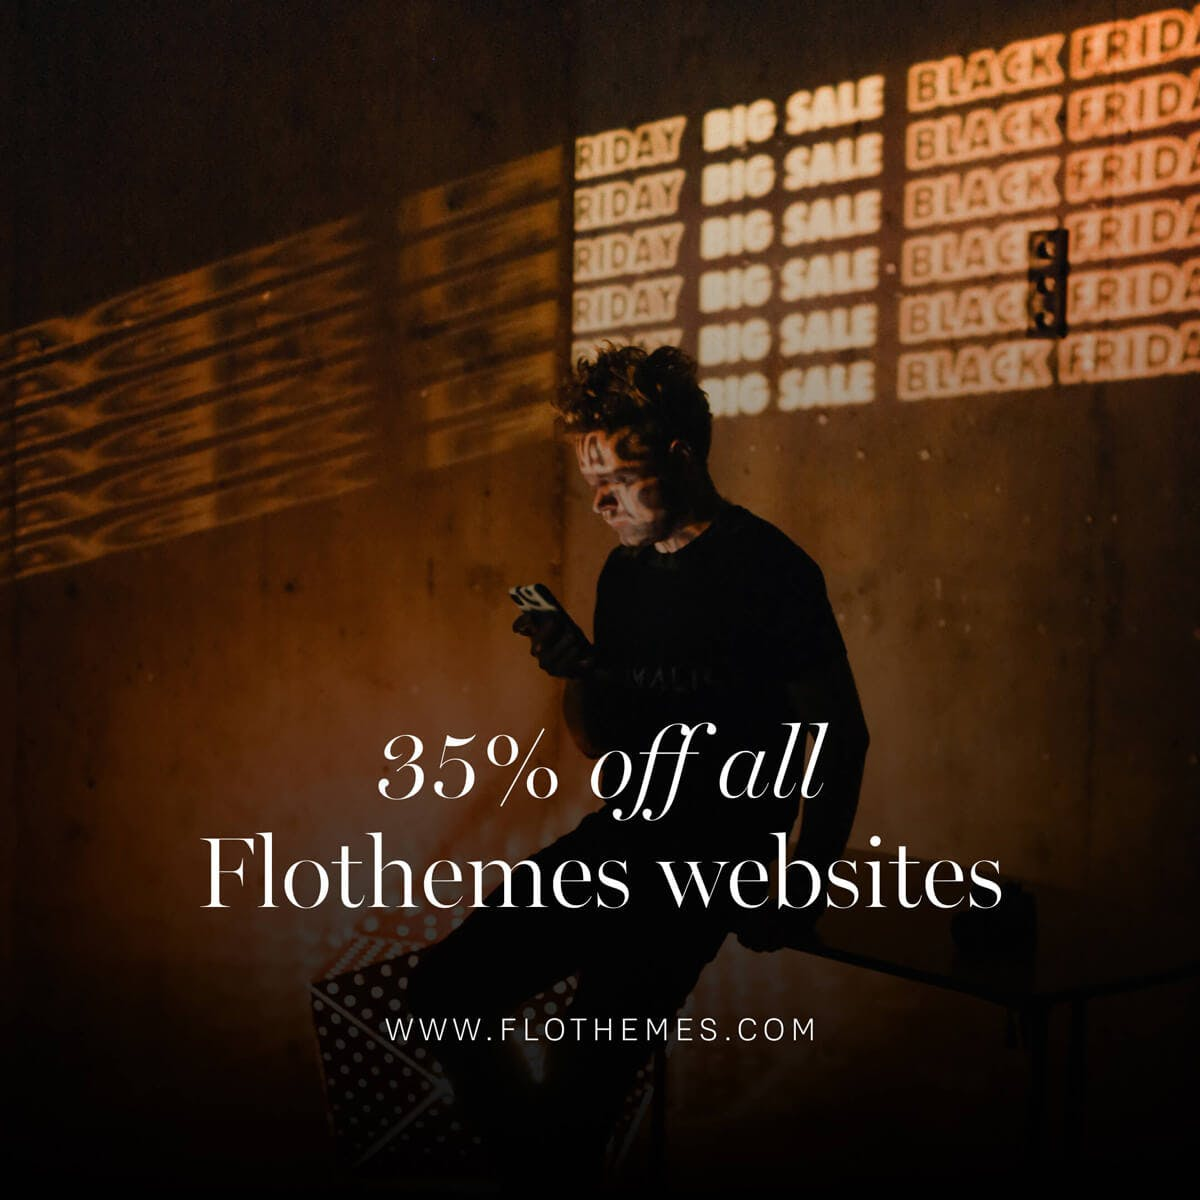 Black Friday deals for photographers Flothemes discount code